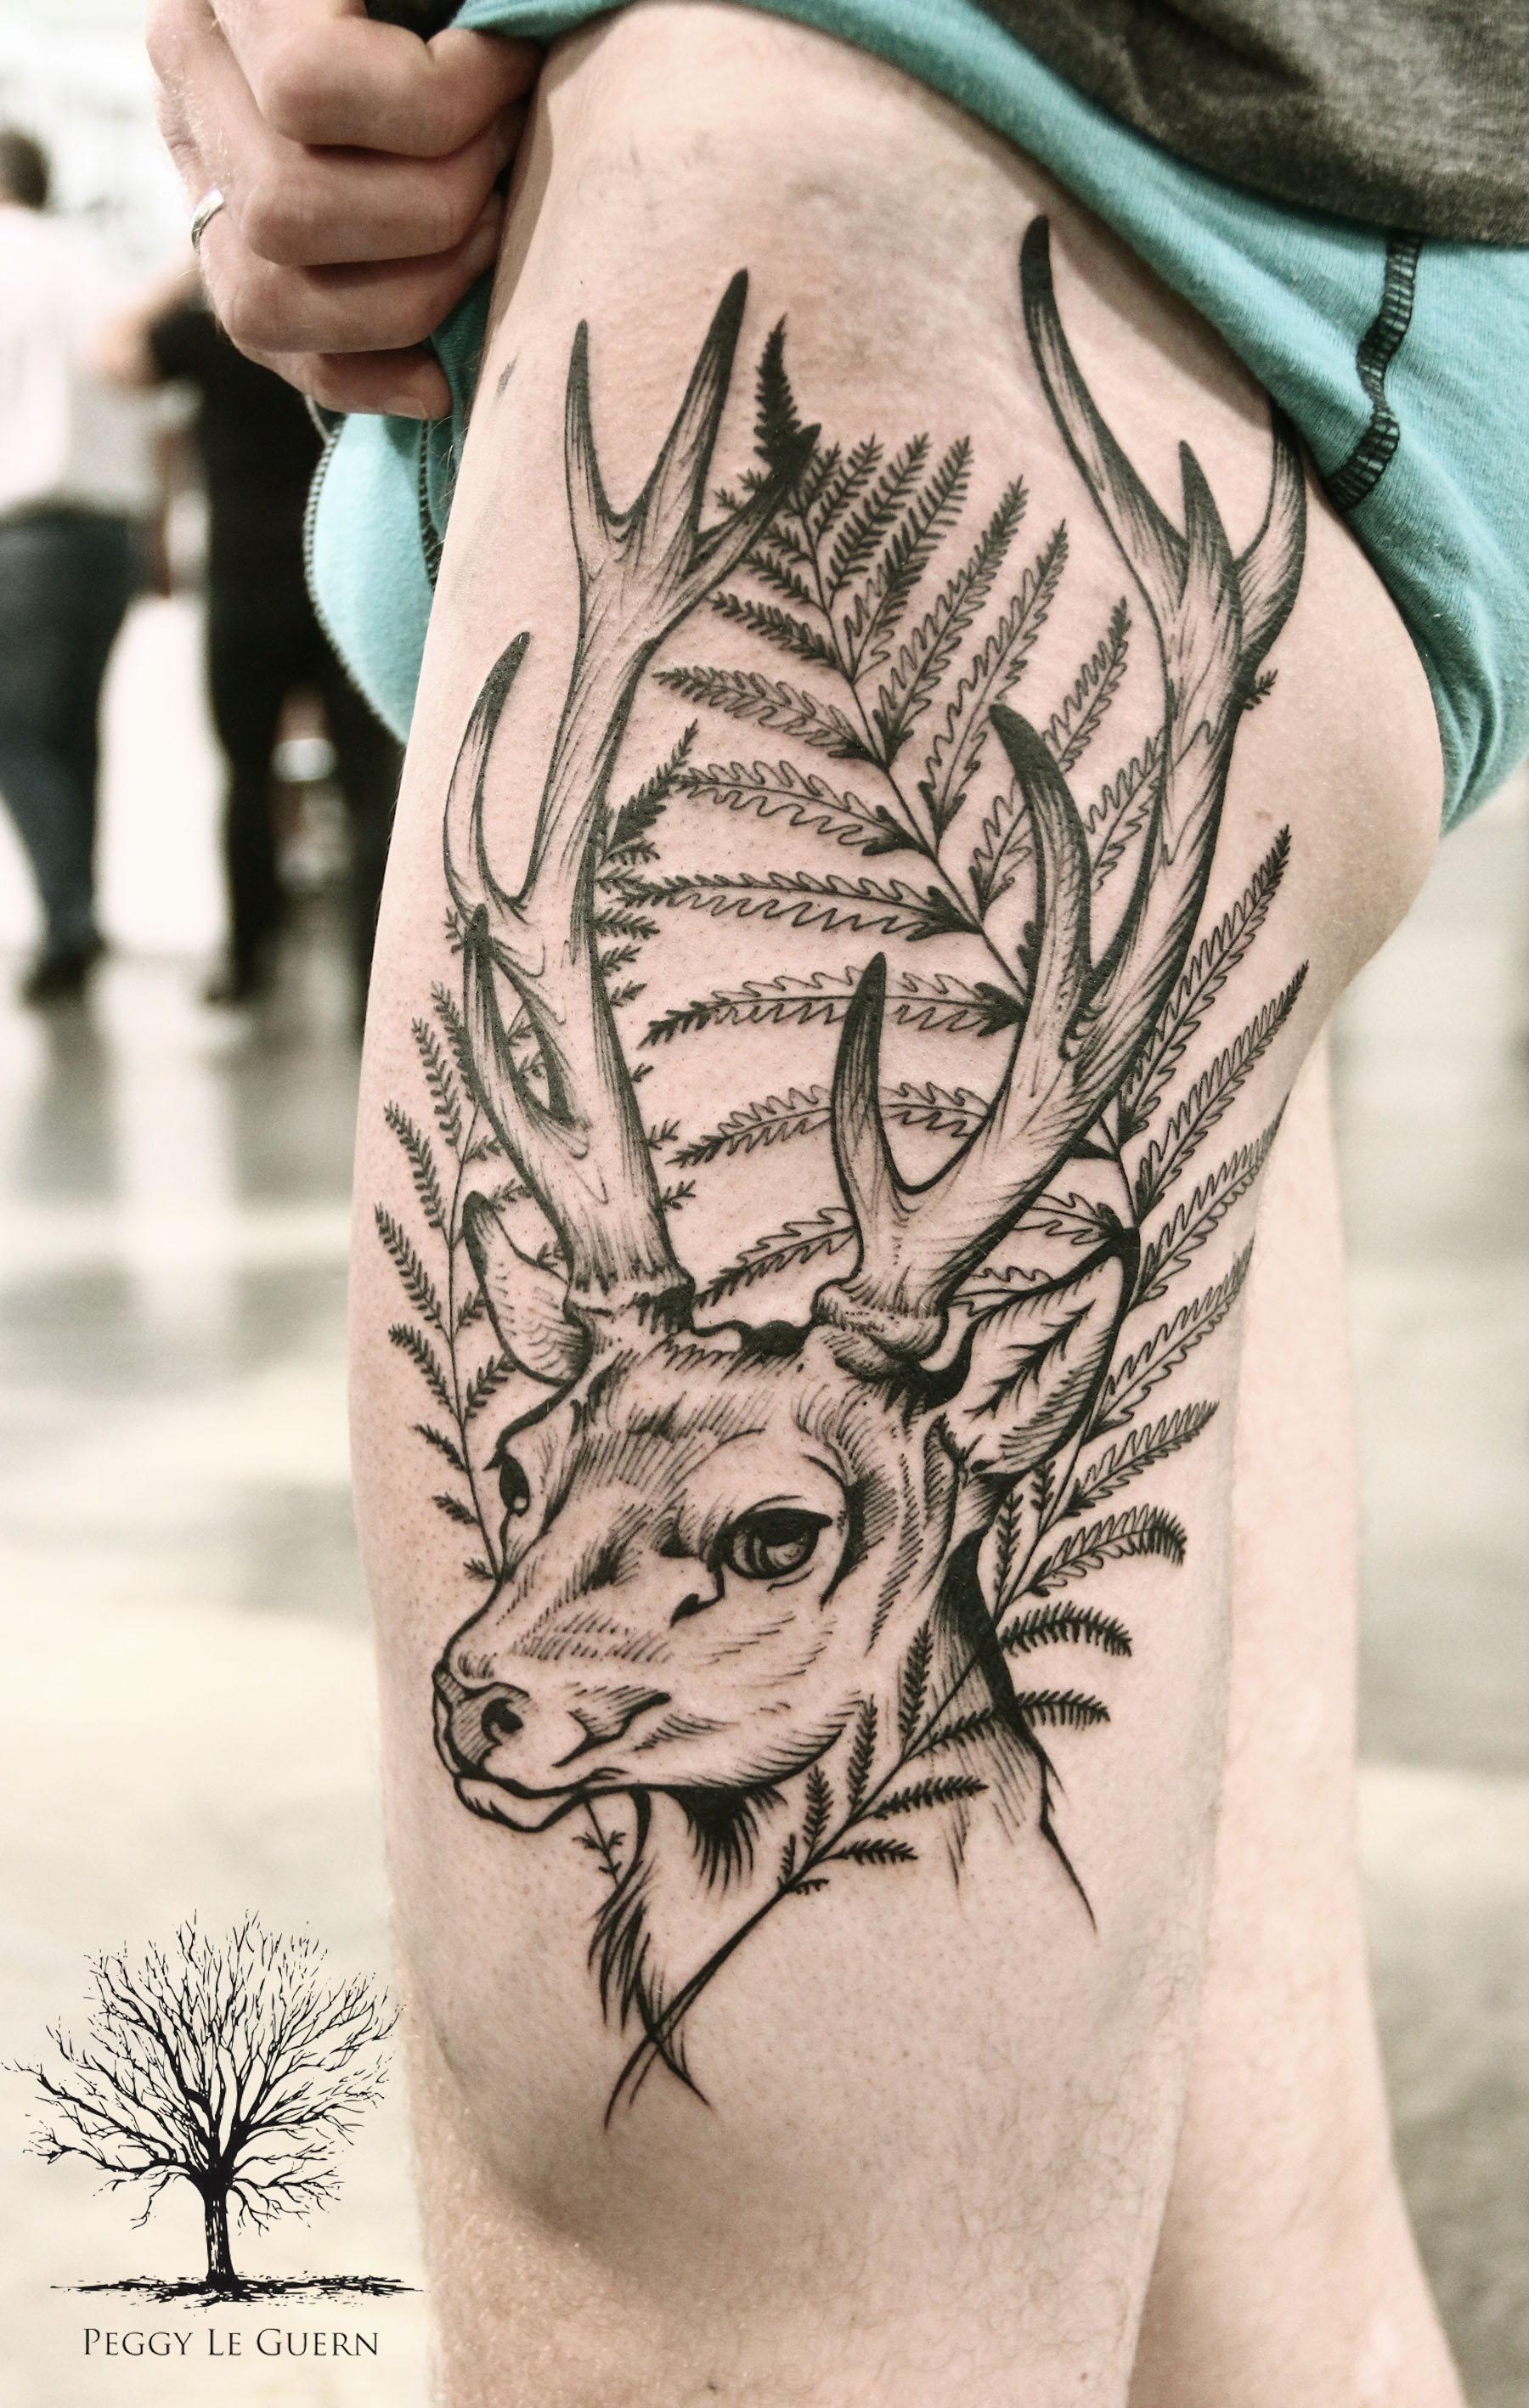 Prix Best of day Tattoo show Chalons en Champagne 2018